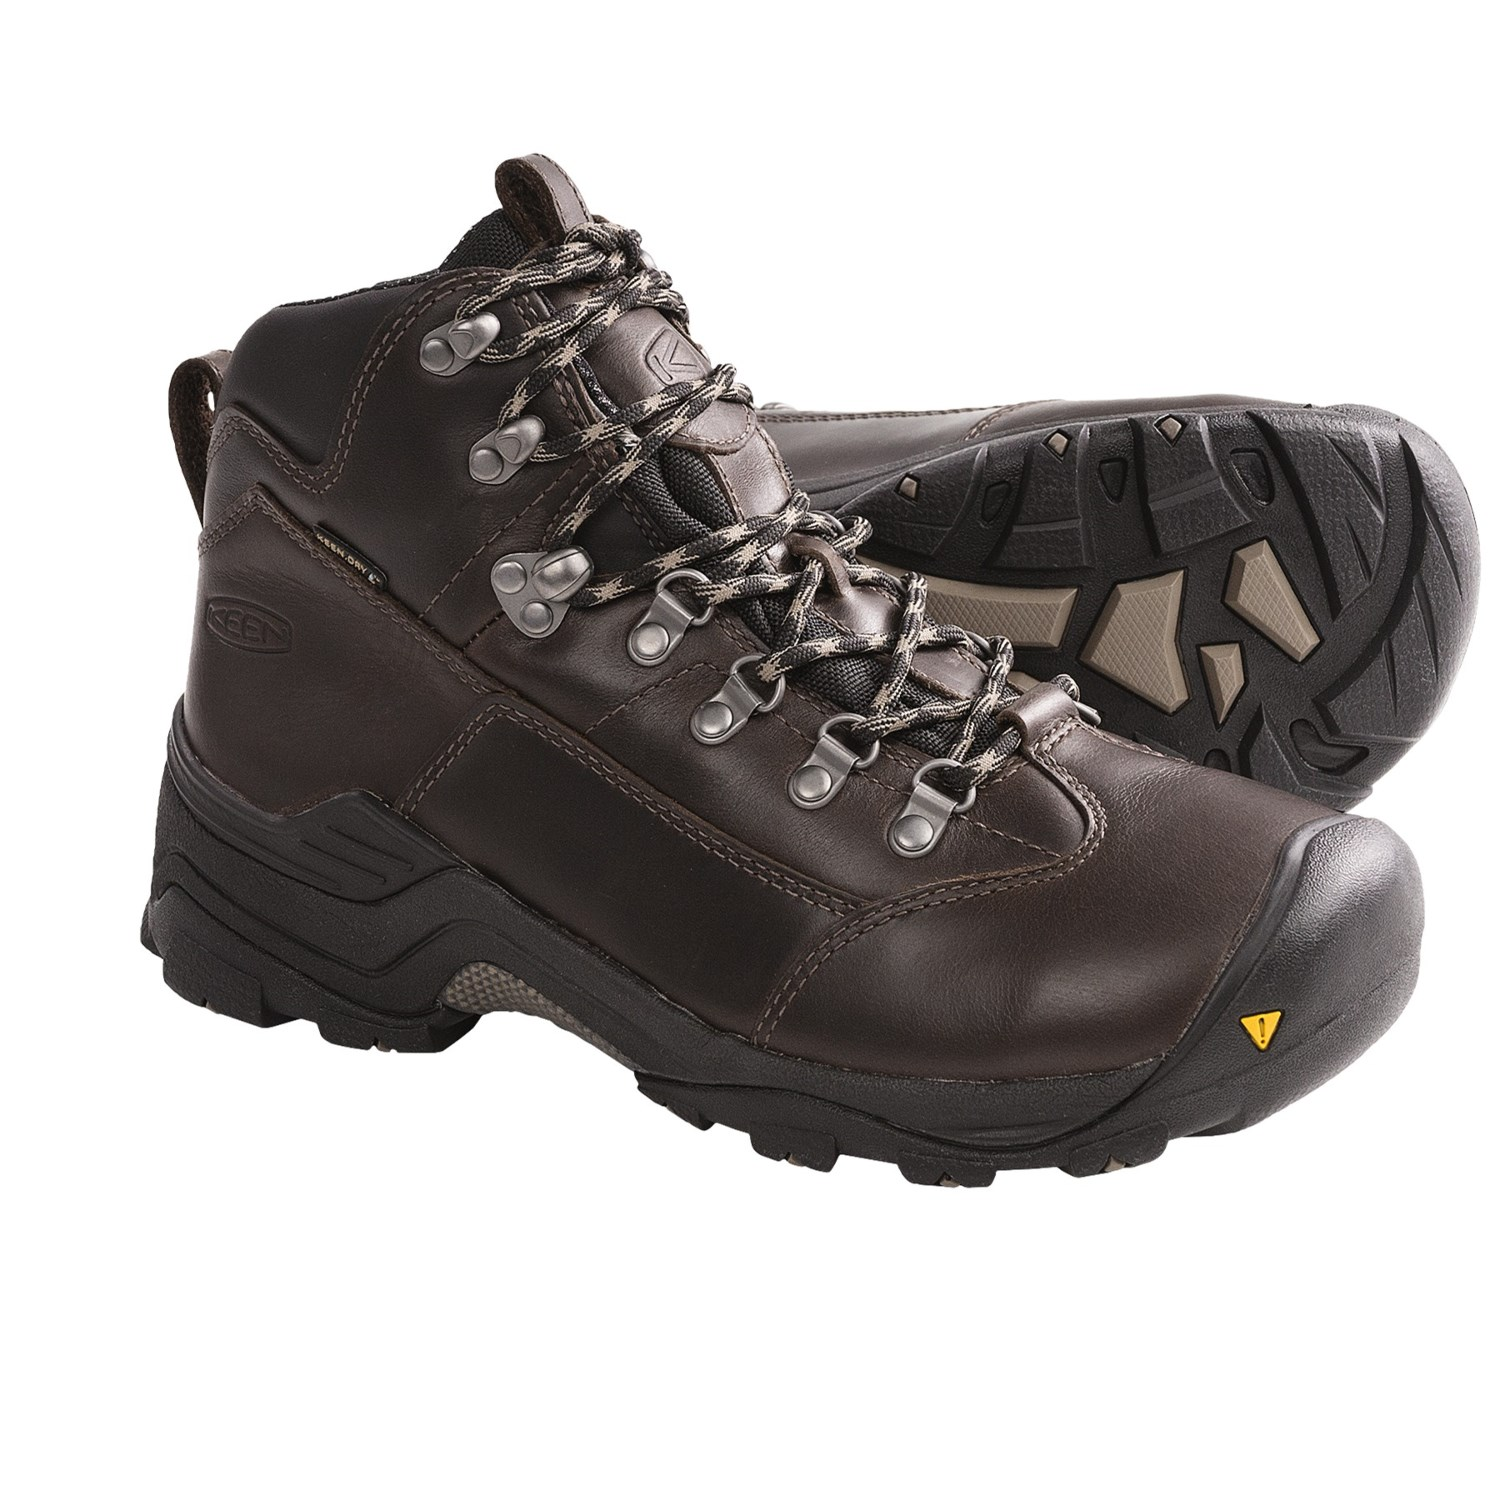 2deals keen glarus mid hiking boots waterproof leather